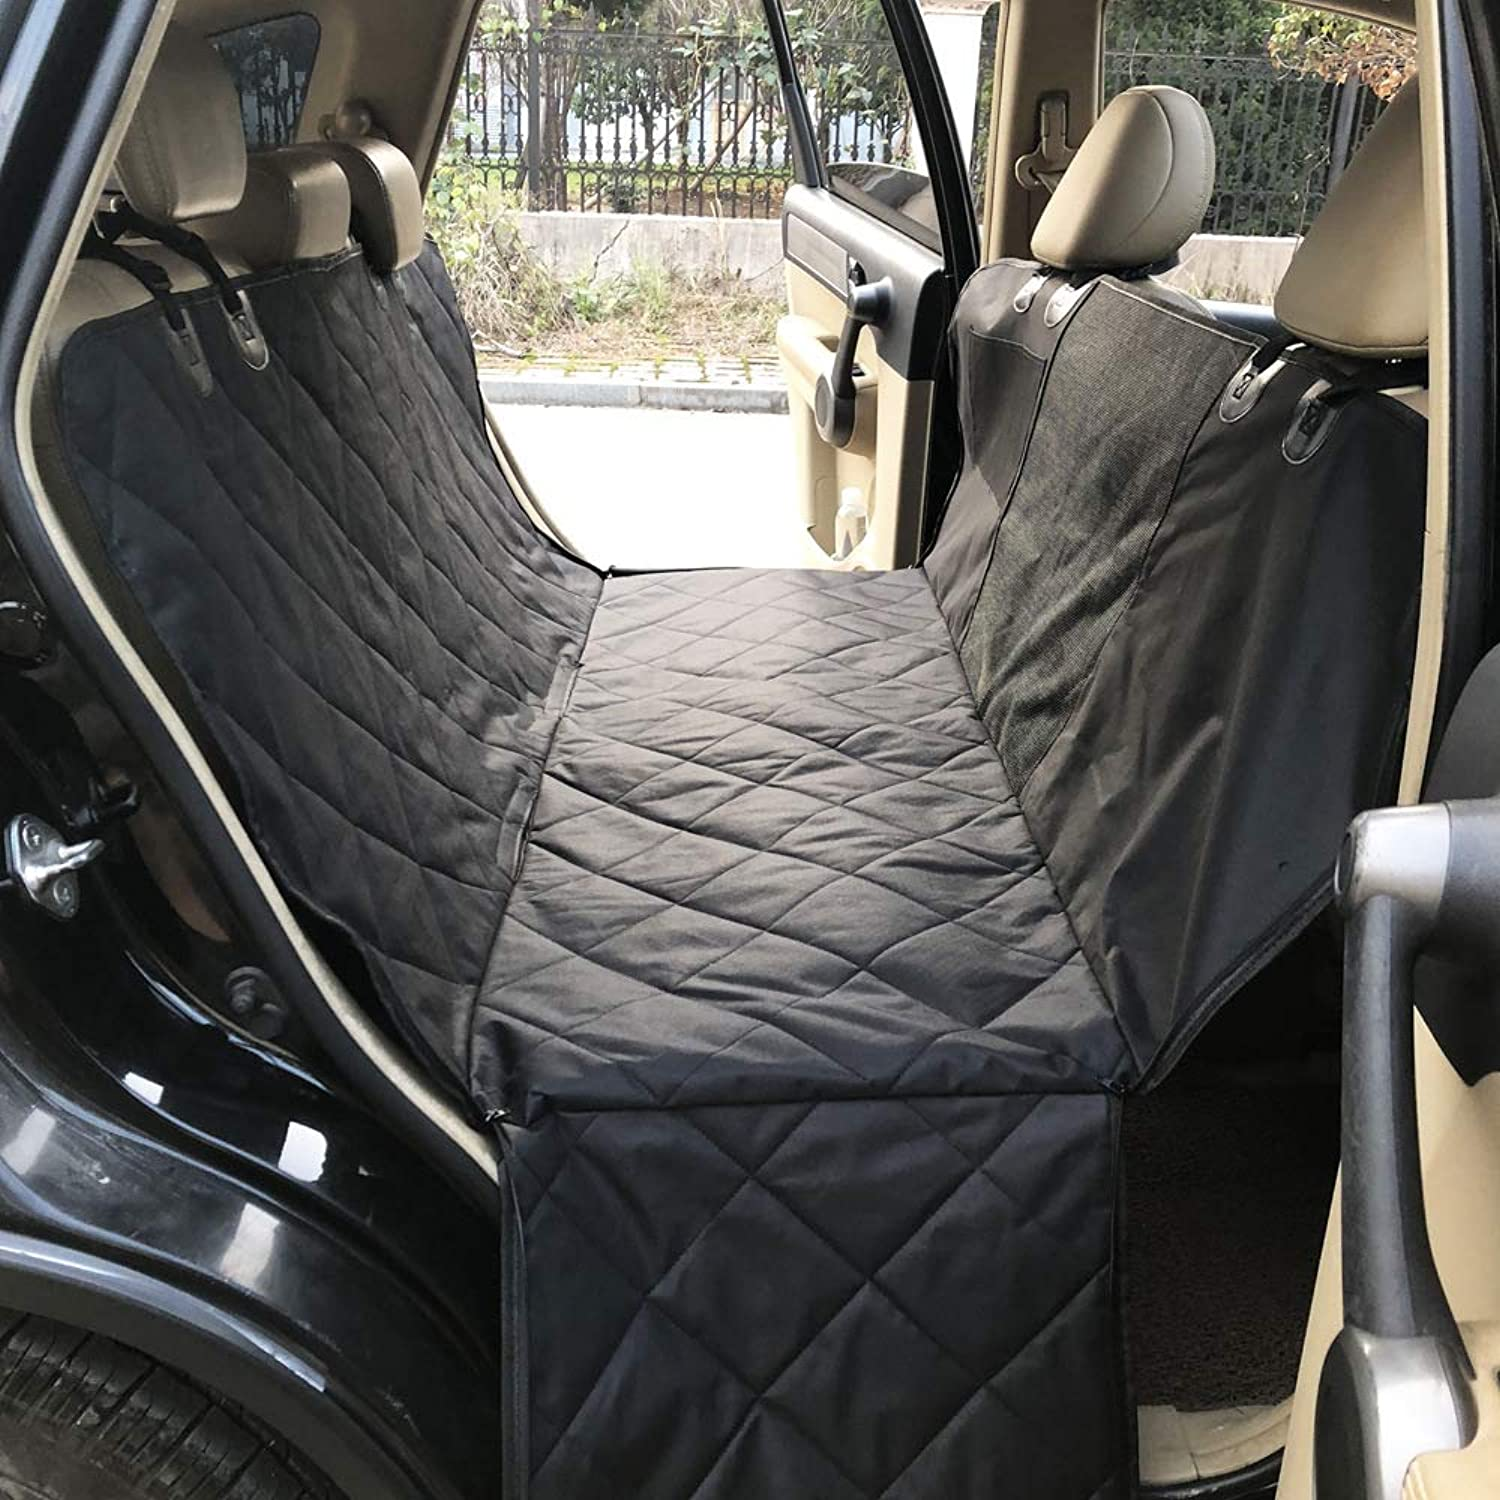 Dog Car Seat Cover Waterproof Pet Car Seat Predector With Side Flaps, Scratch Proof Nonslip Padded Pet Seat Cover